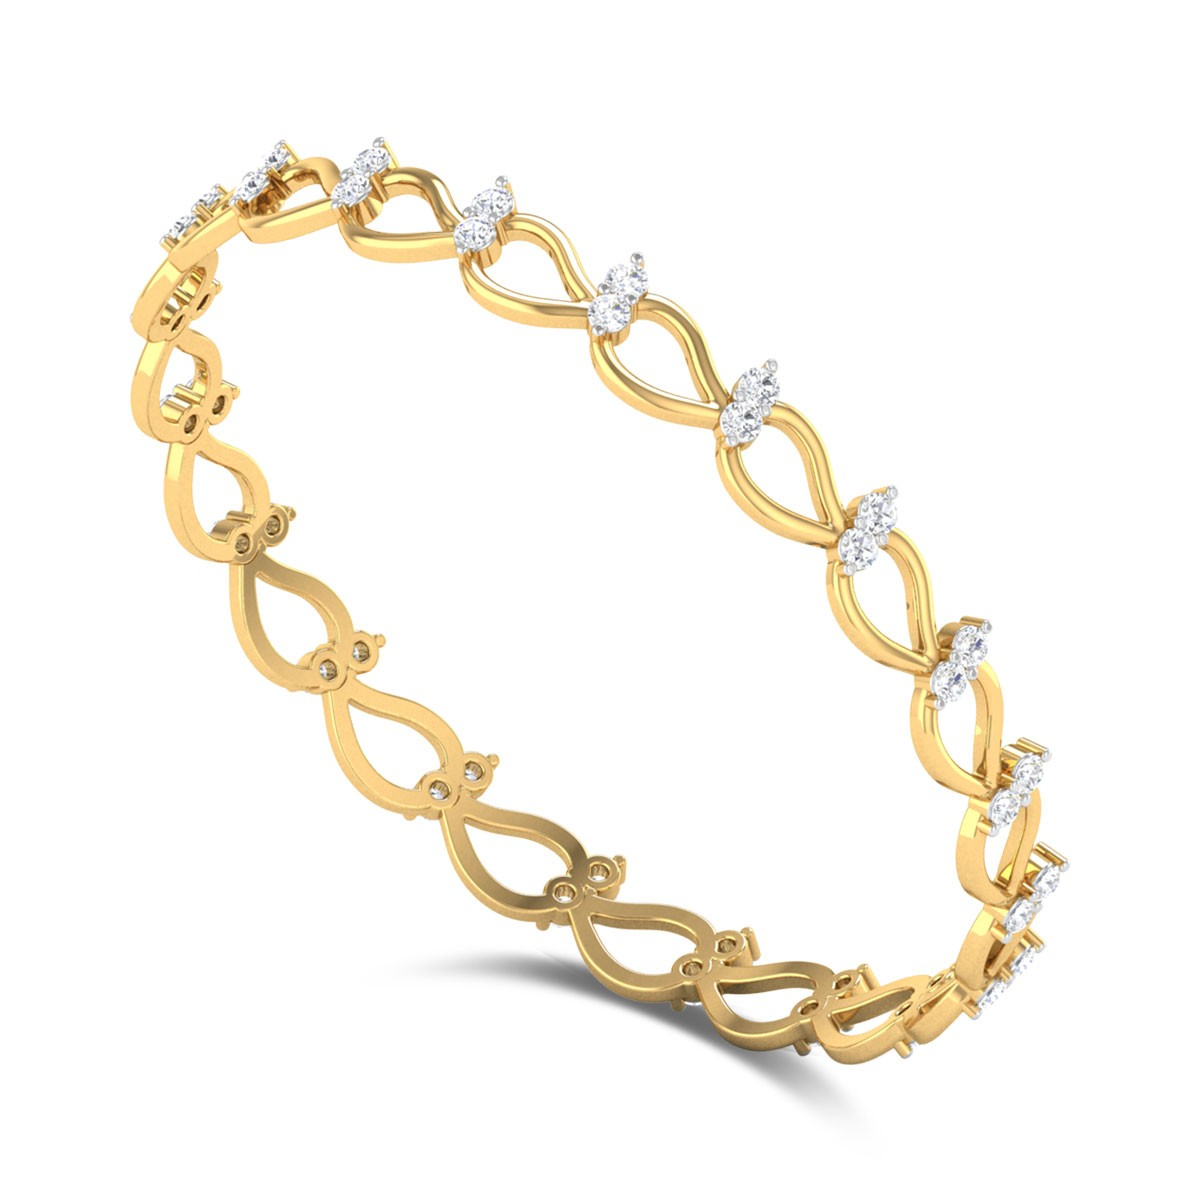 Lechenaultia Diamond Bangle